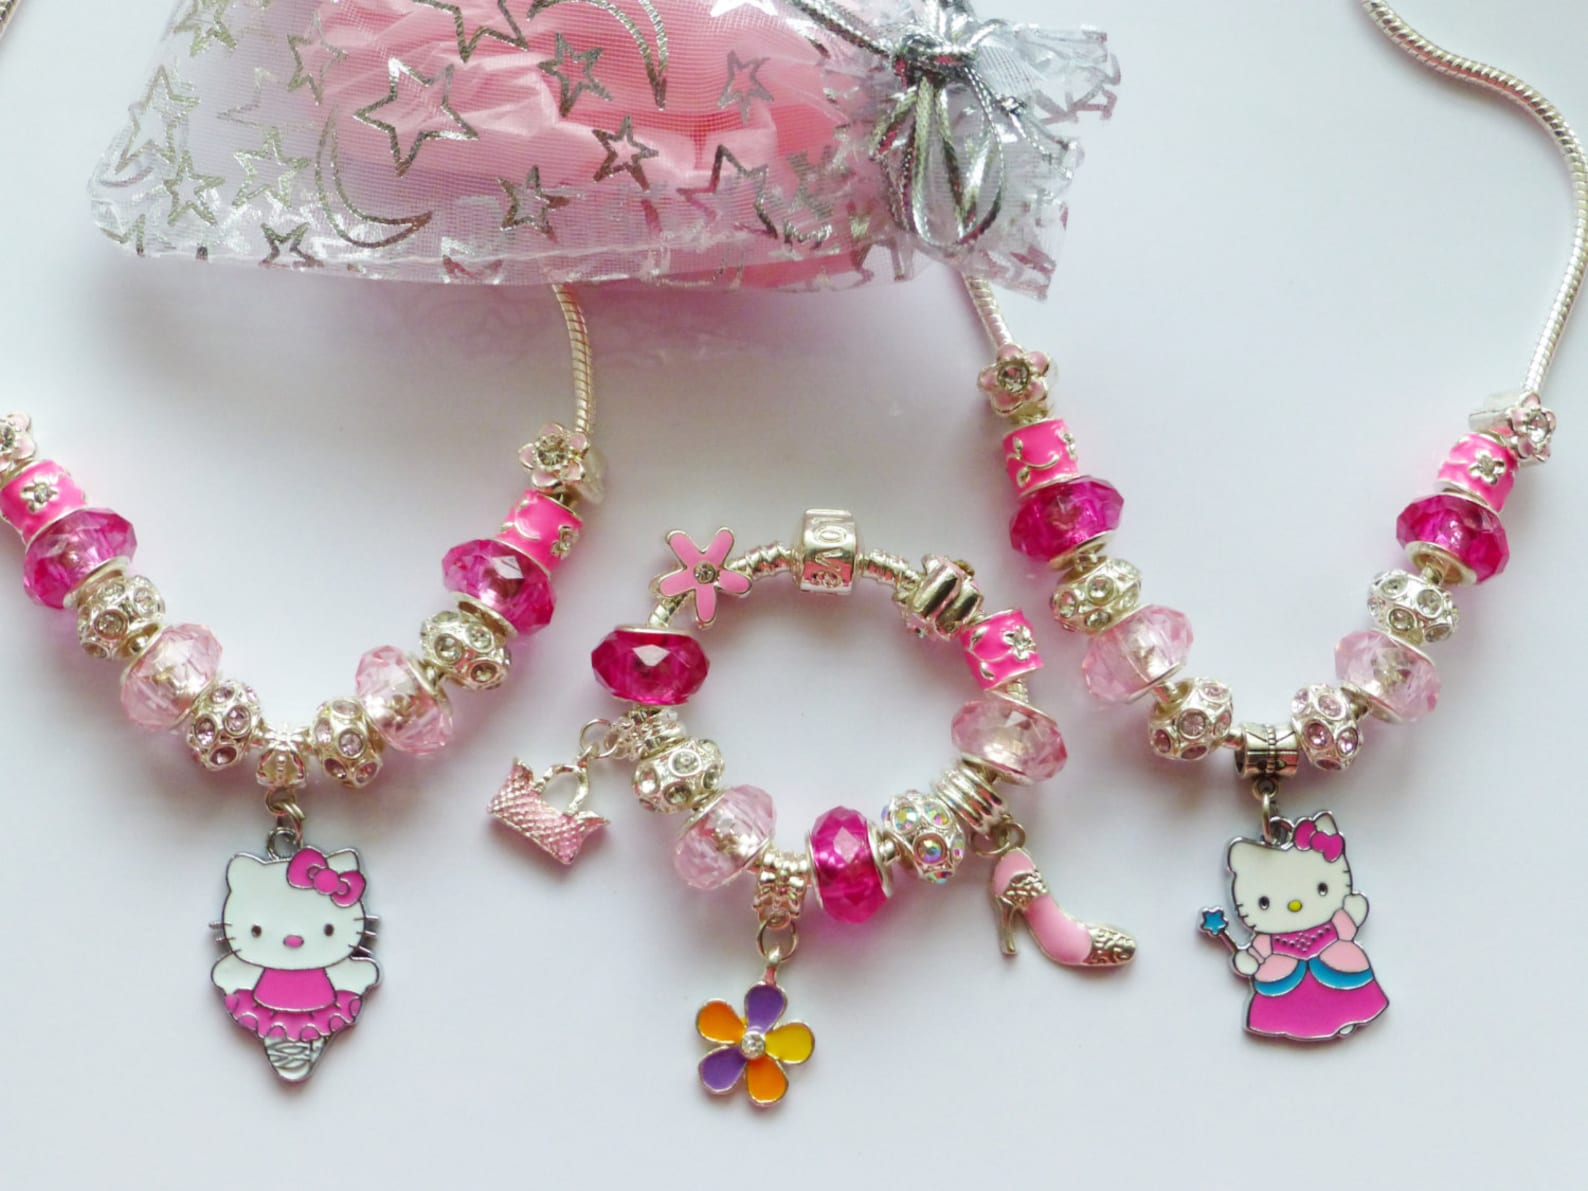 cat charm bracelet & necklace set choose ballet dancer or princess pendant in gift pouch little girls